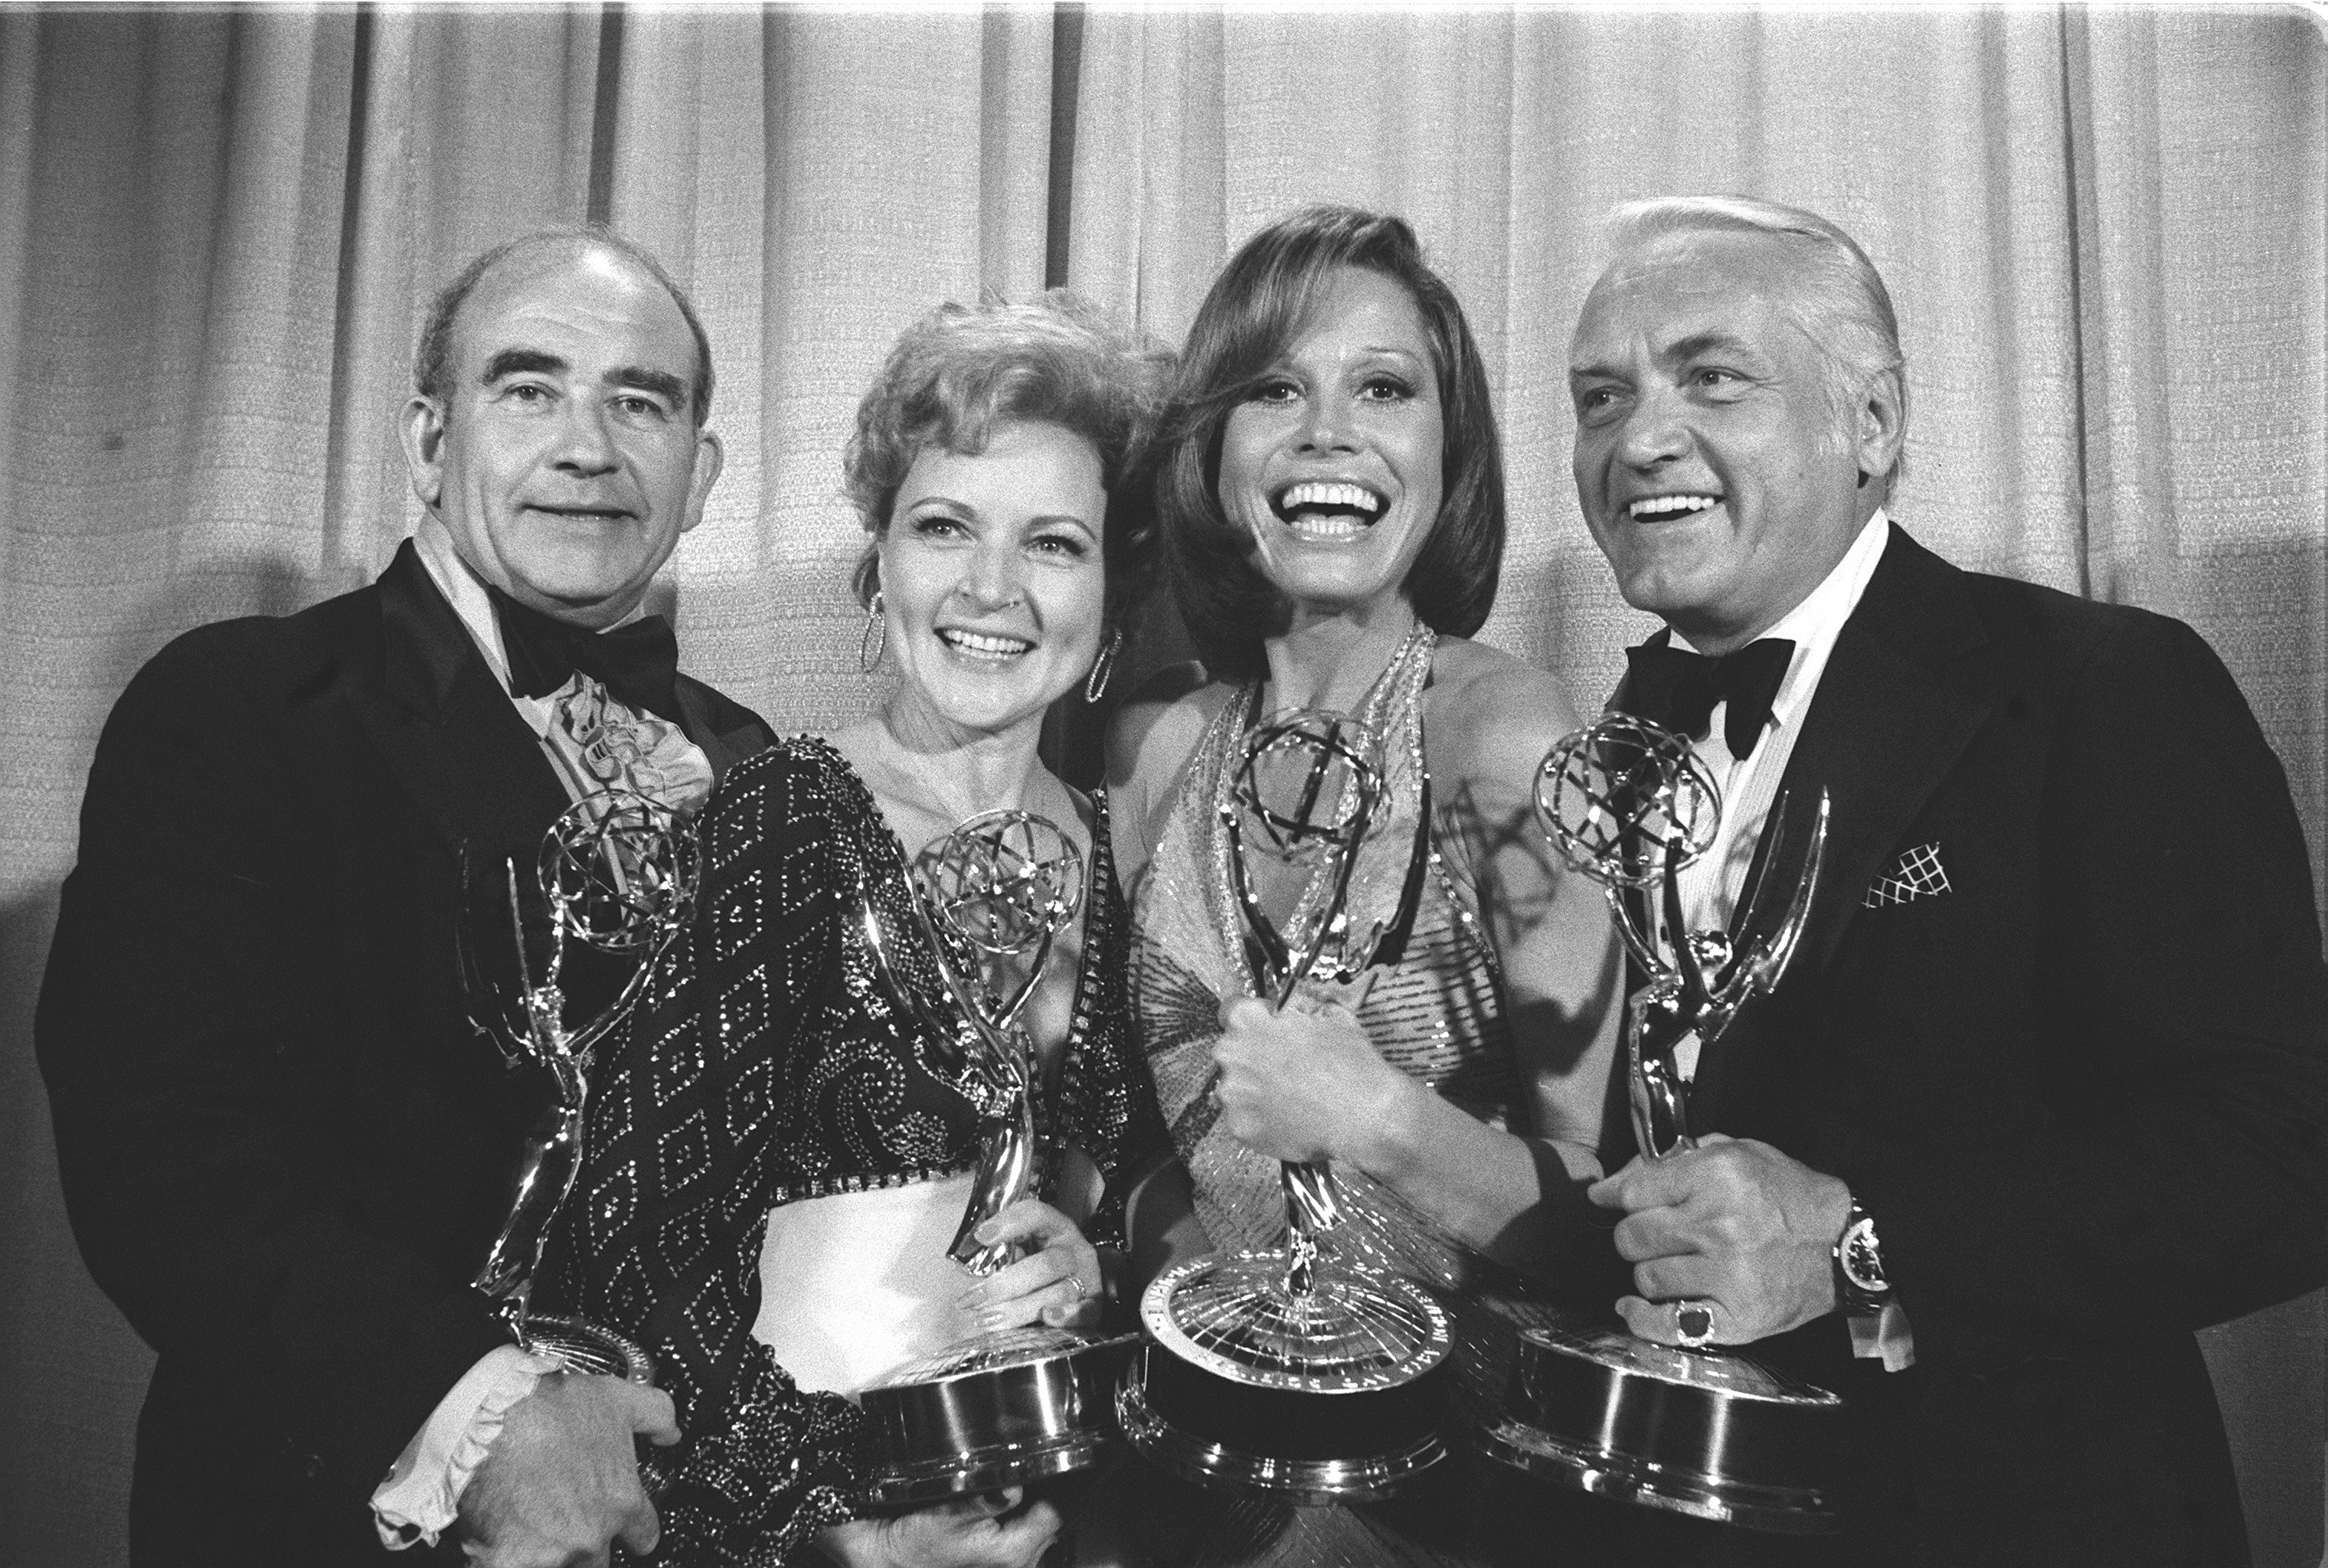 LOS ANGELES - 1. JANUAR: DIE MARY TYLER MOORE SHOW: Emmy Awards. (von links) Edward Asner, Betty White, Mary Tyler Moore, Ted Knight.   Quelle: Getty Images